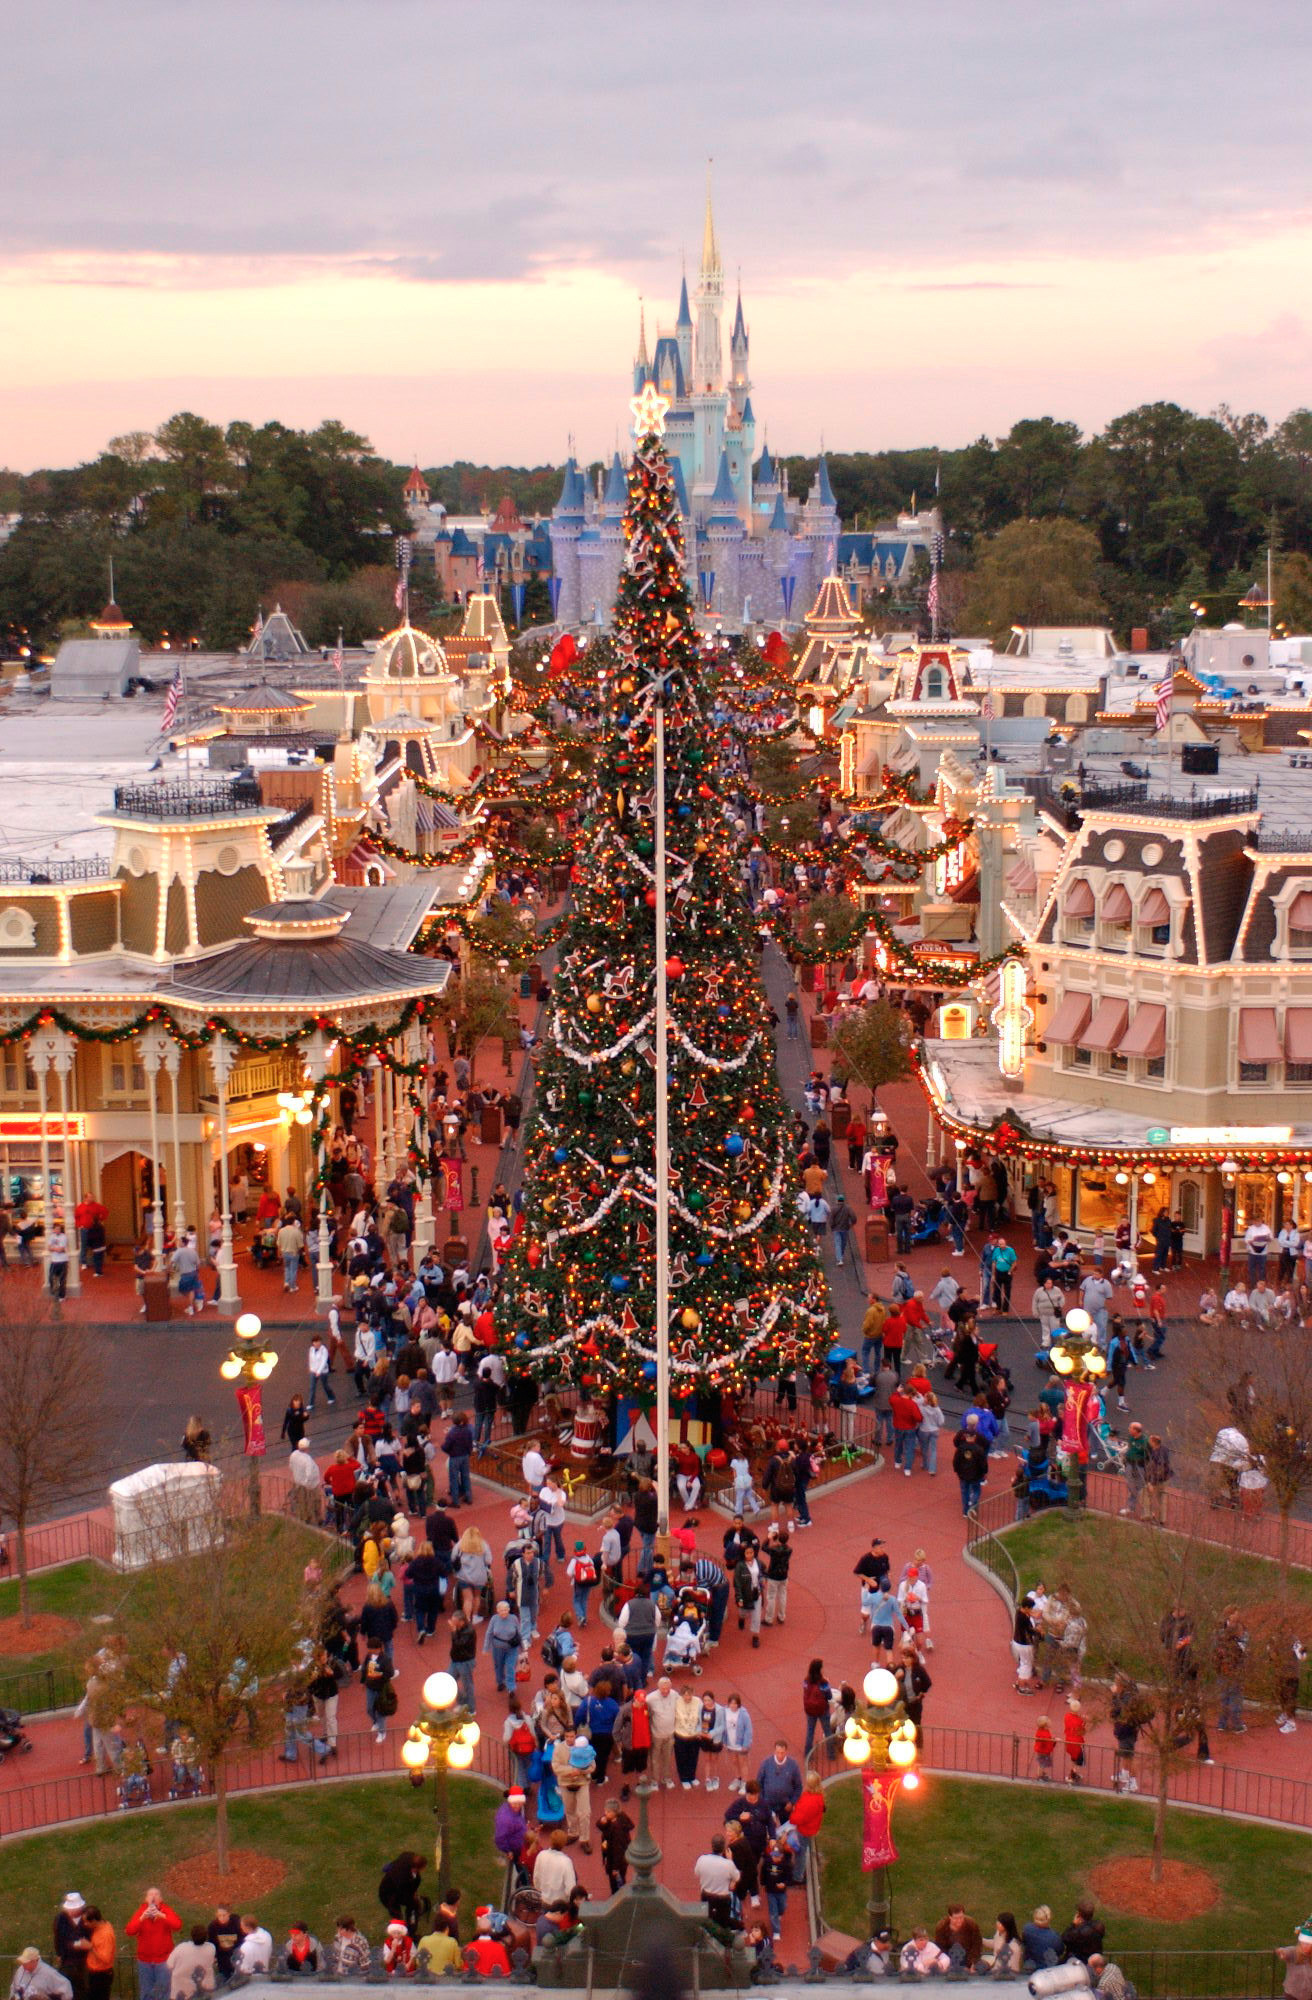 ResortLoop.com Episode 161 – Christmas at WDW with only a Very Merry Christmas Party Ticket